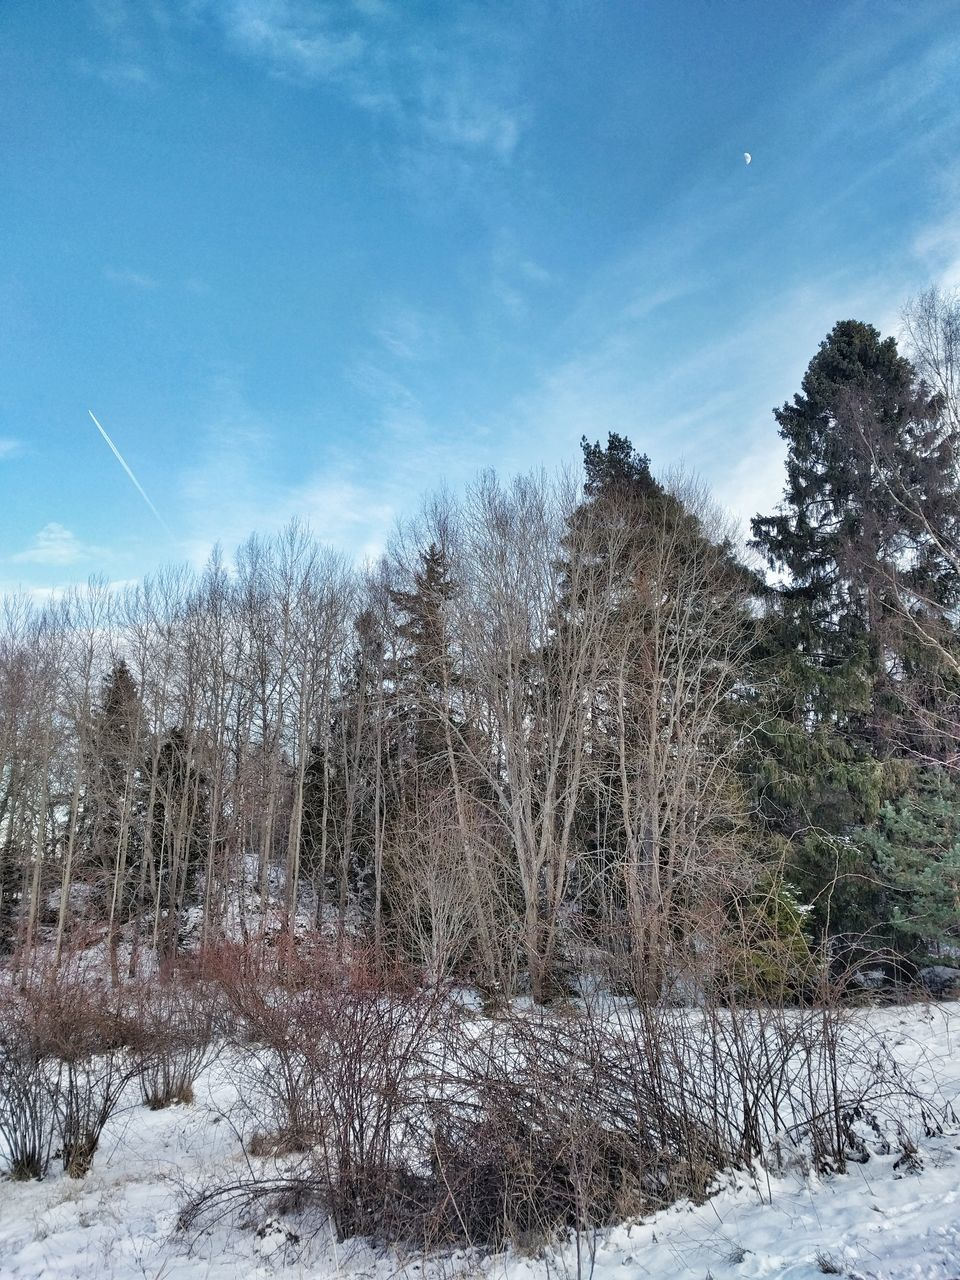 snow, winter, cold temperature, nature, weather, beauty in nature, tree, tranquility, scenics, tranquil scene, cold, frozen, no people, day, outdoors, white color, bare tree, landscape, sky, snowdrift